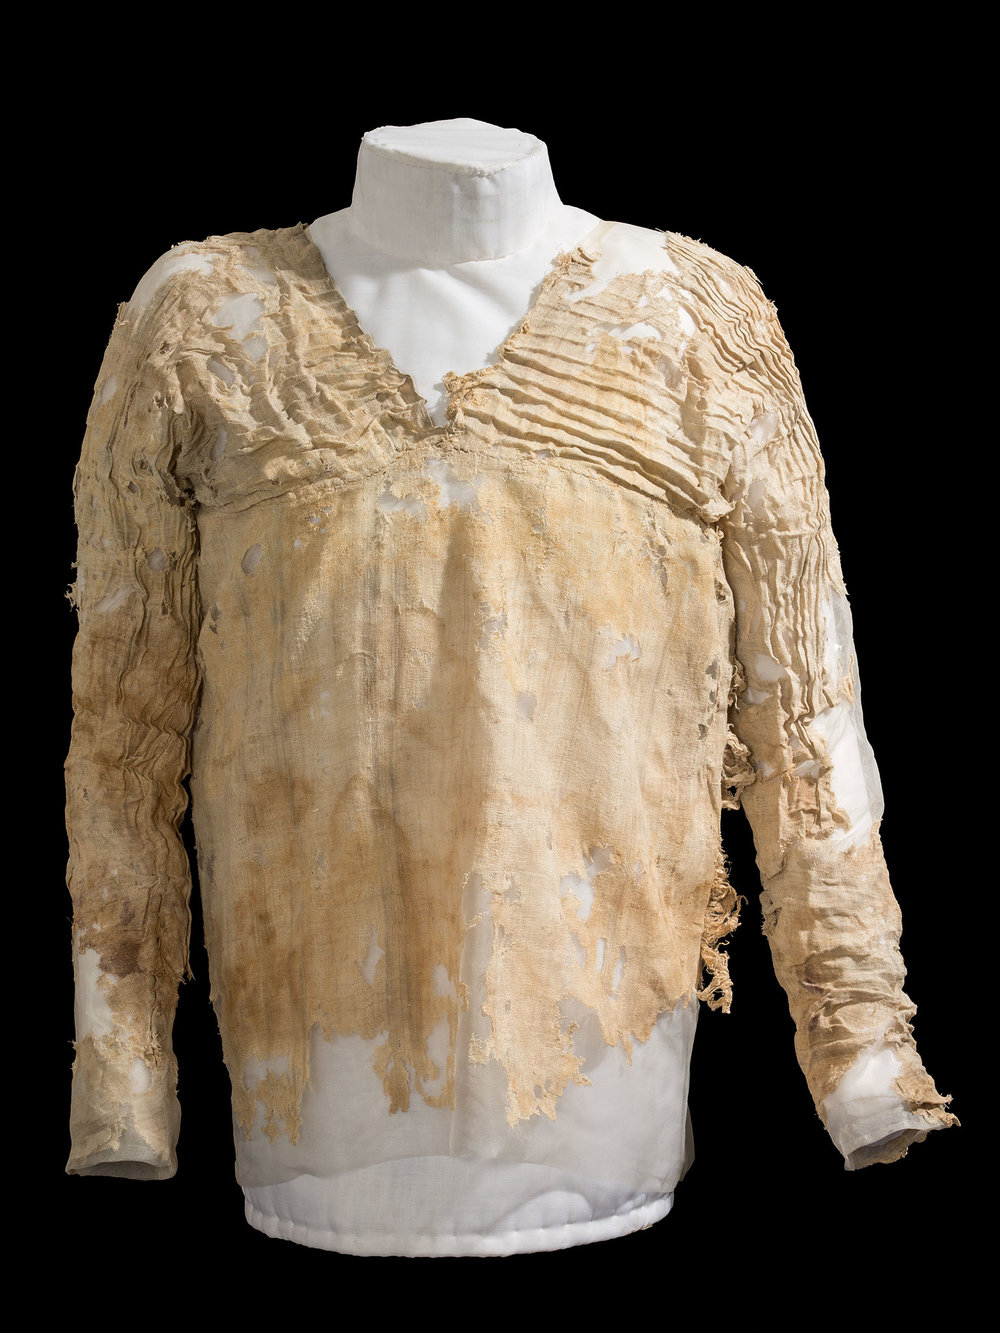 (Courtesy Petrie Museum of Egyptian Archaeology). The Tarkhan Dress likely was worn by a young or slim female member of the royal court, and then placed in the tomb as a funerary object. Although the bottom does not survive, it may once have been full-length.